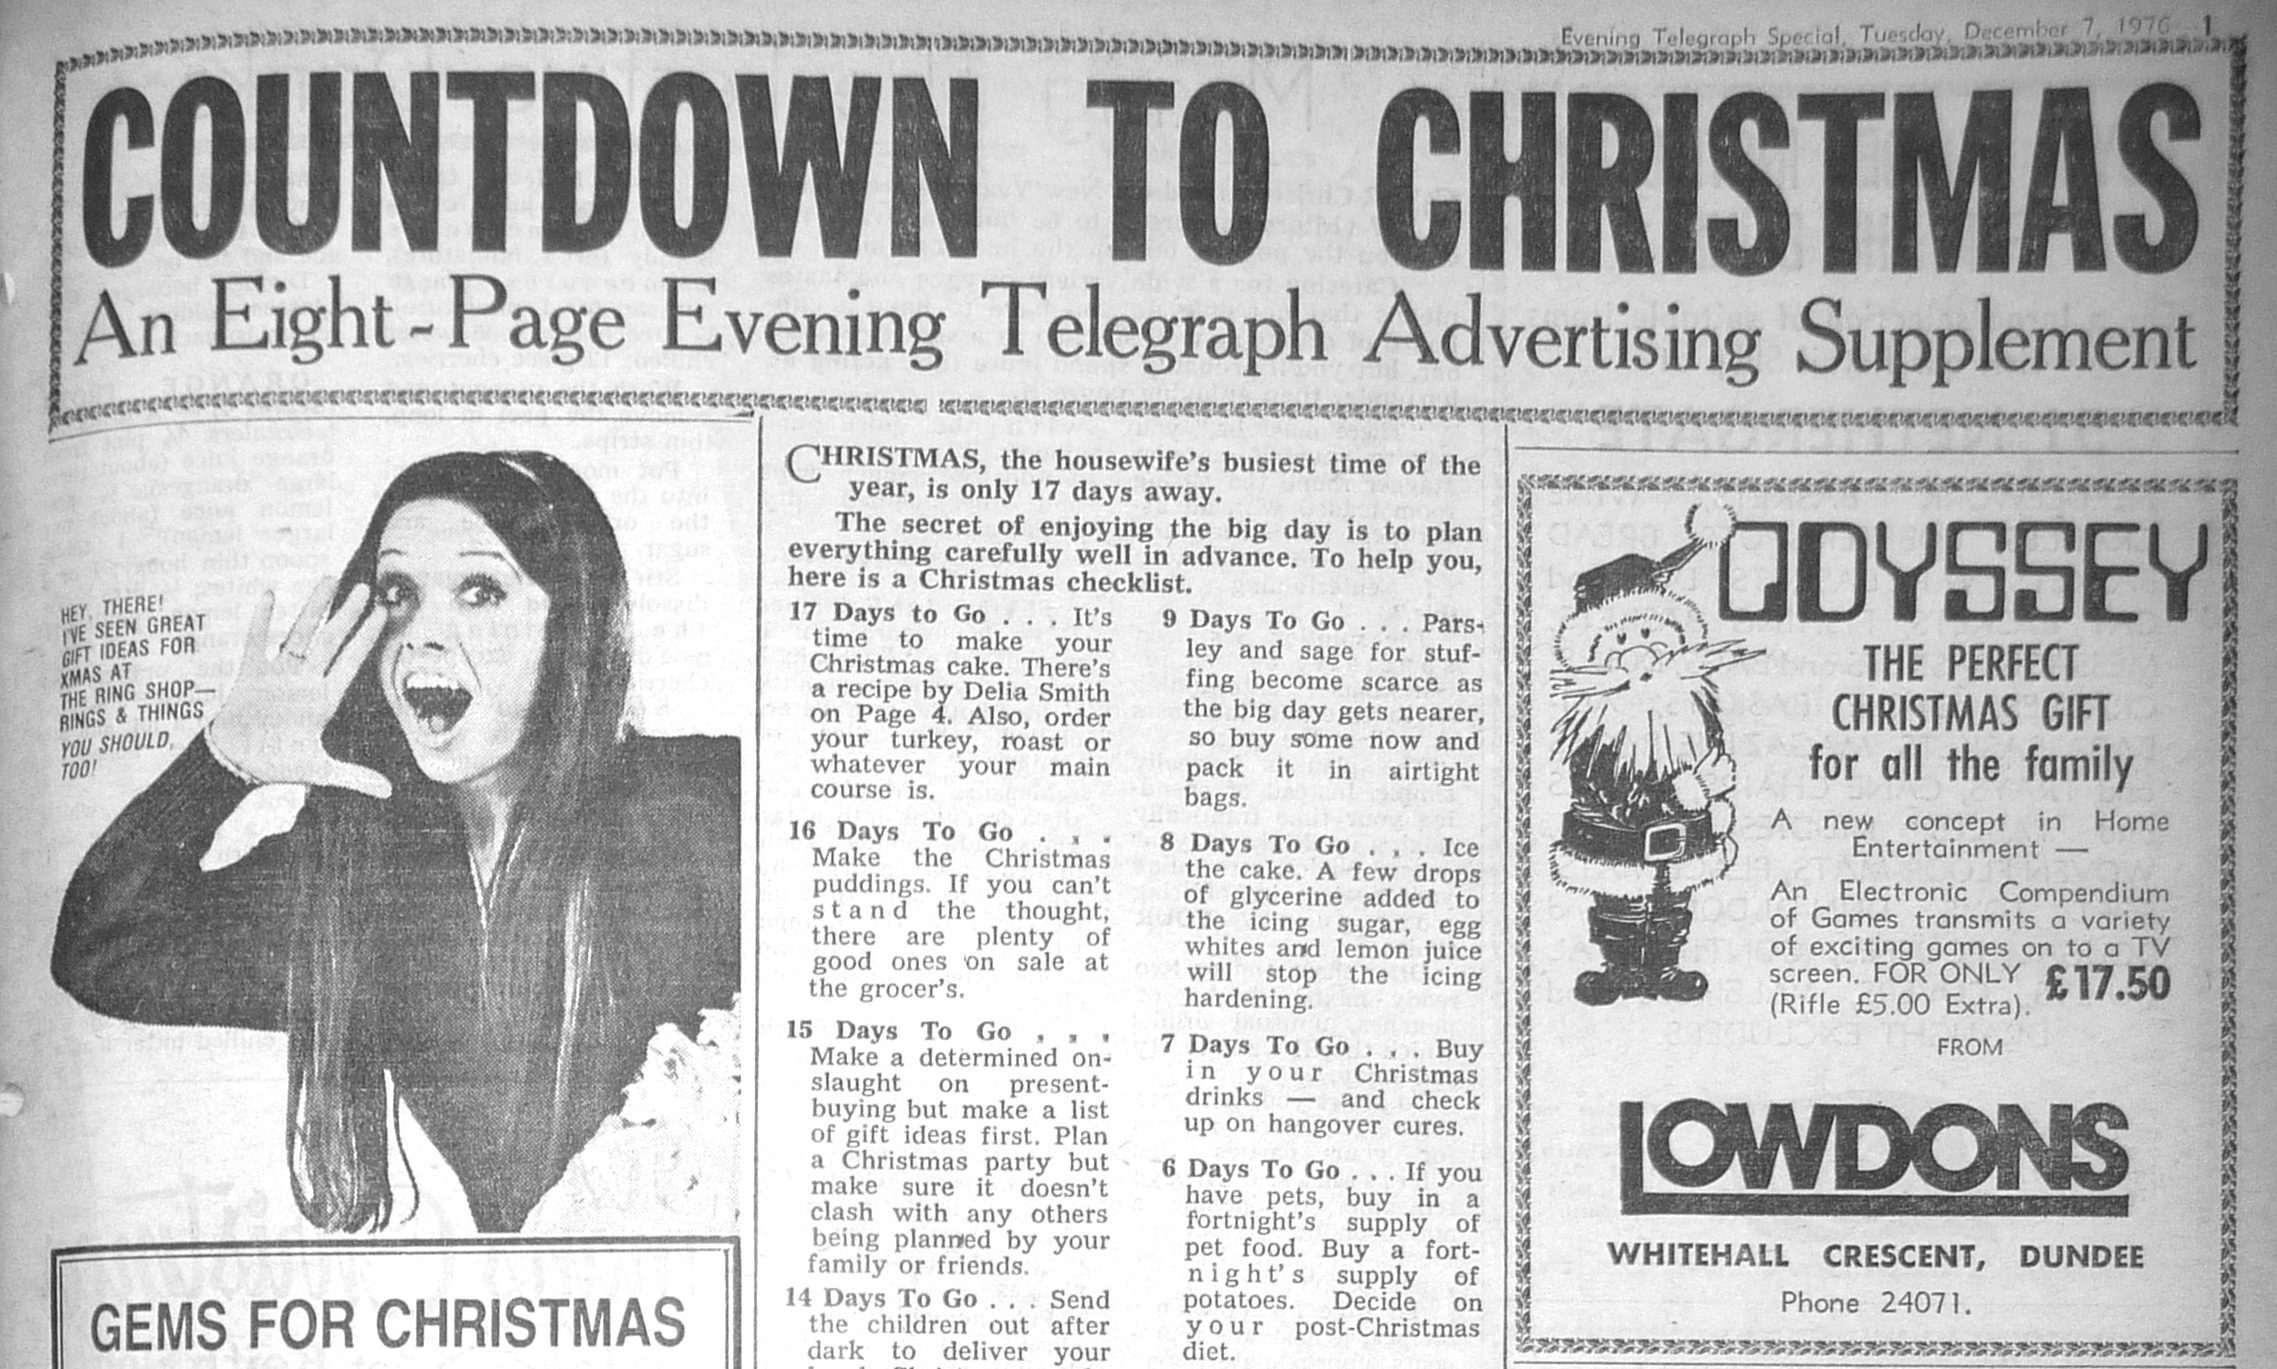 The Tele's Christmas supplement 40 years ago